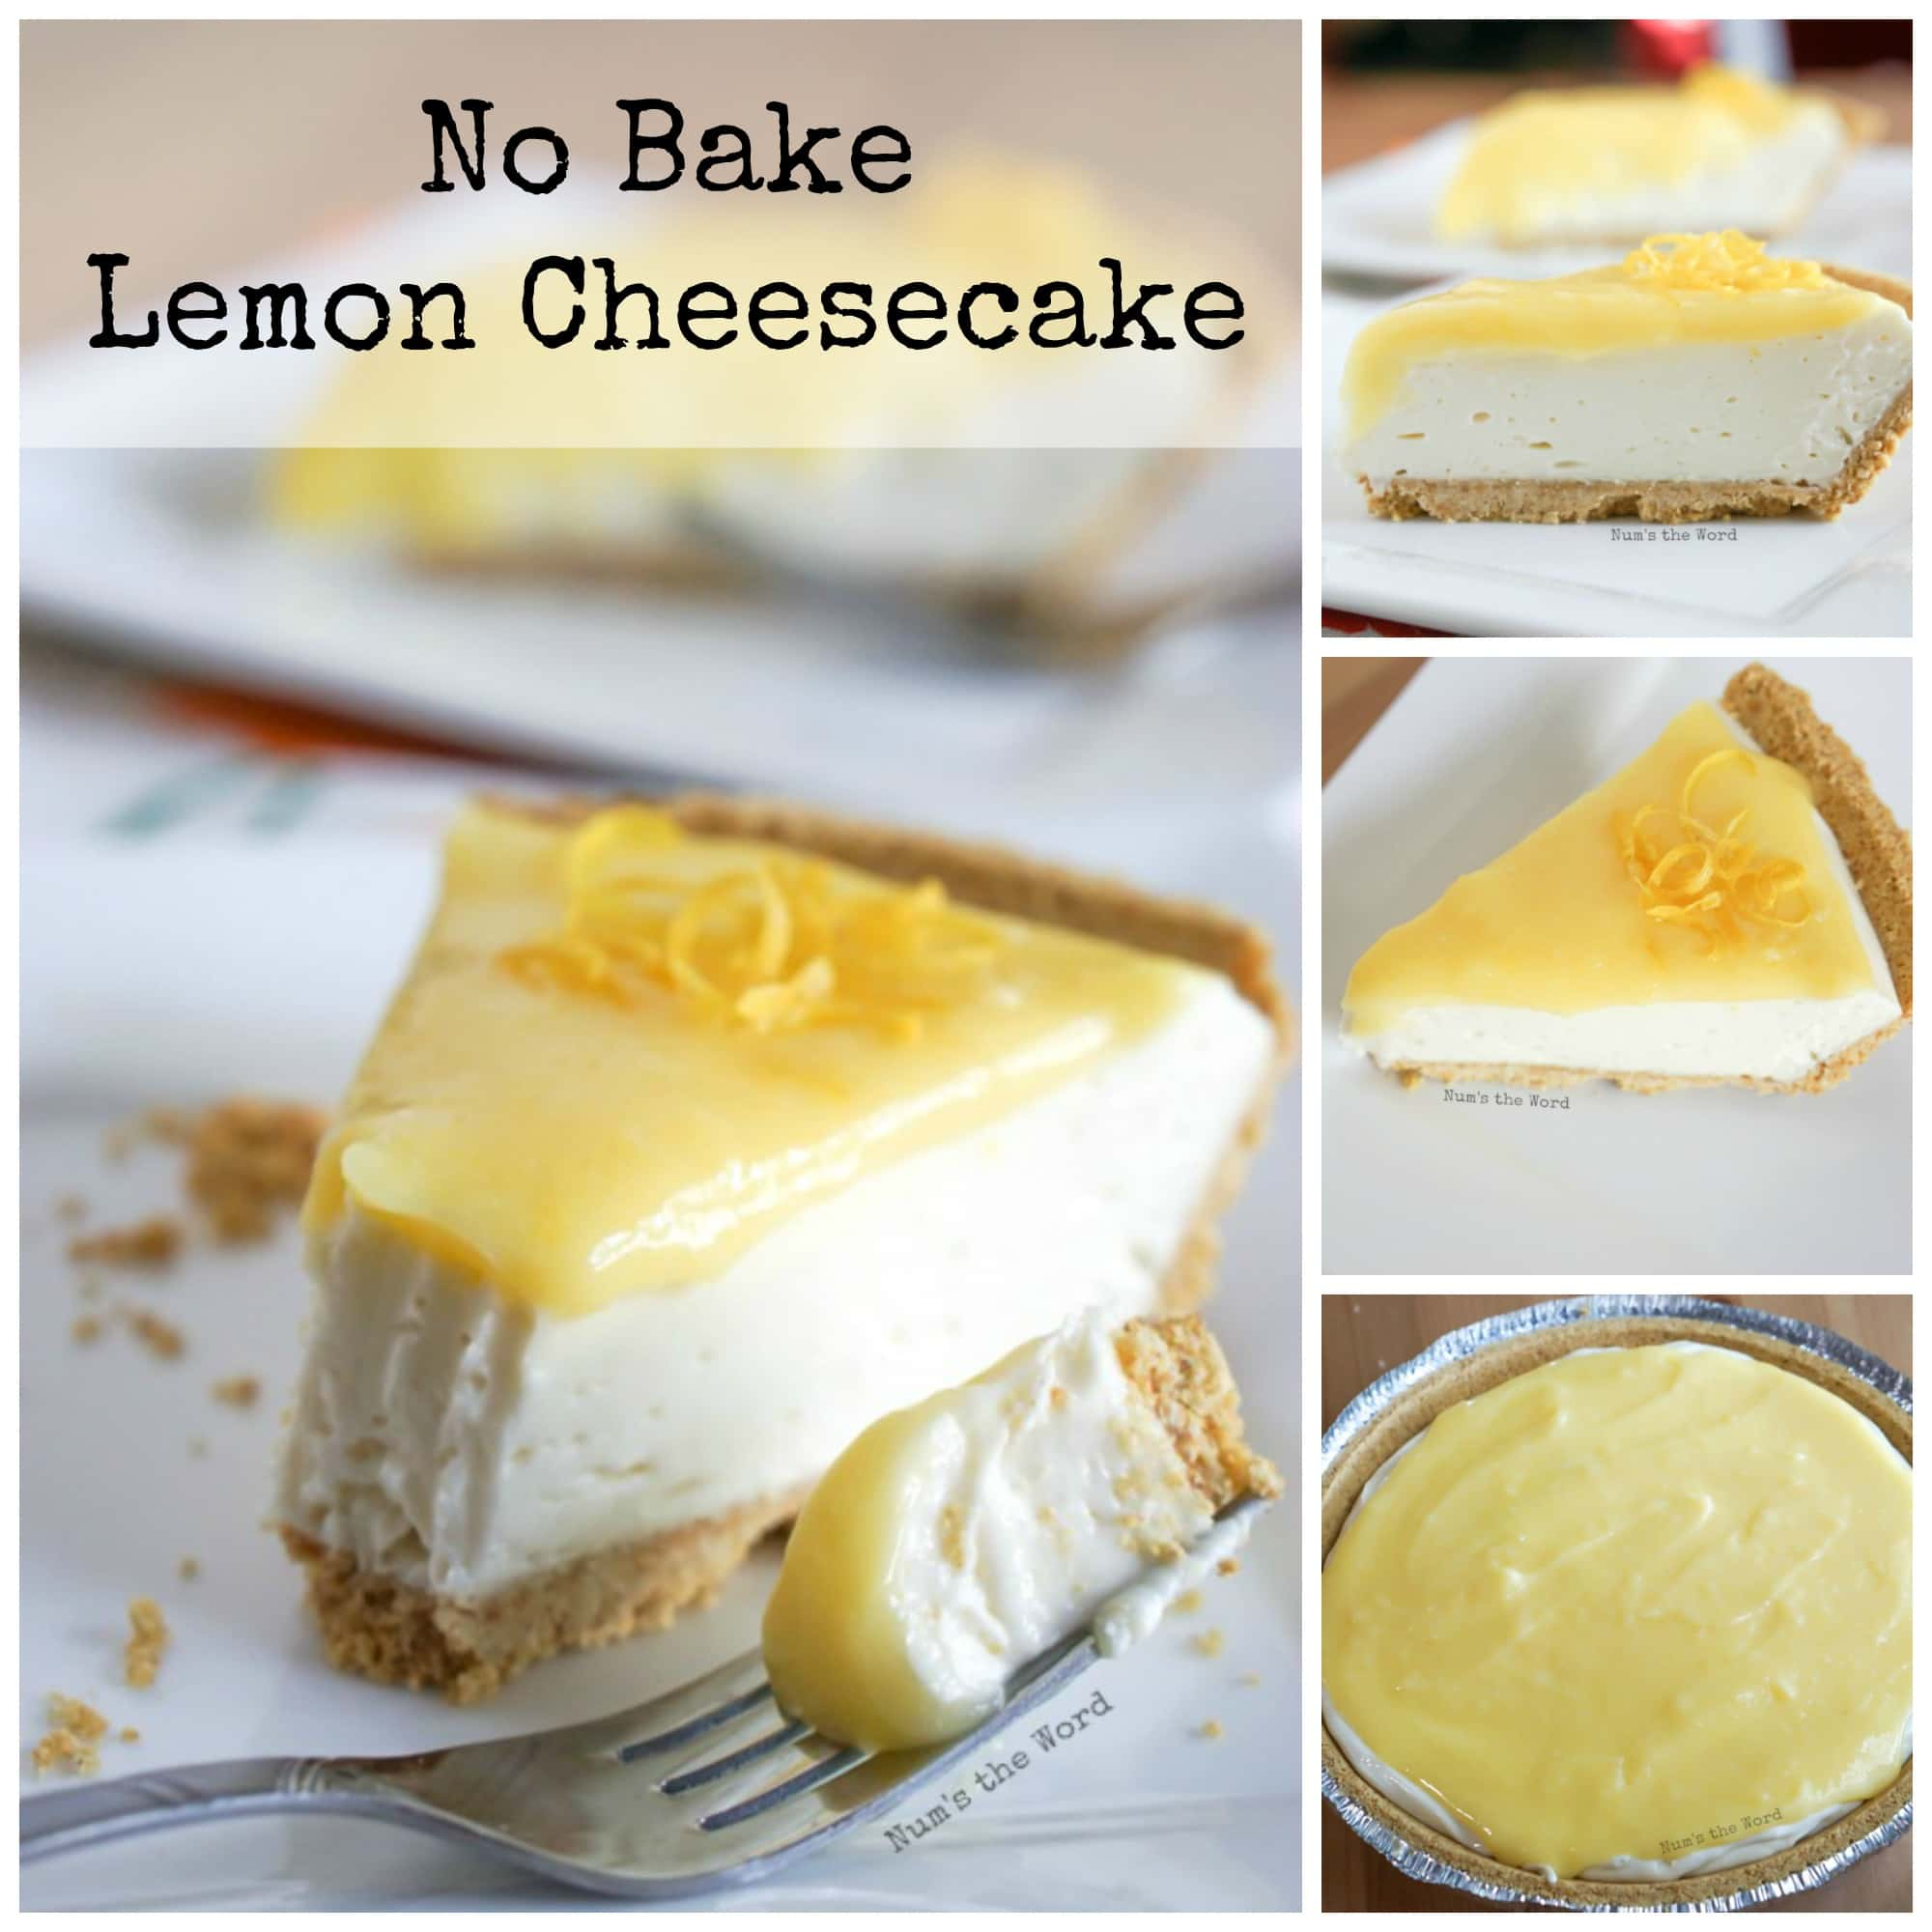 No Bake Lemon Cheesecake - collage of images for Facebook